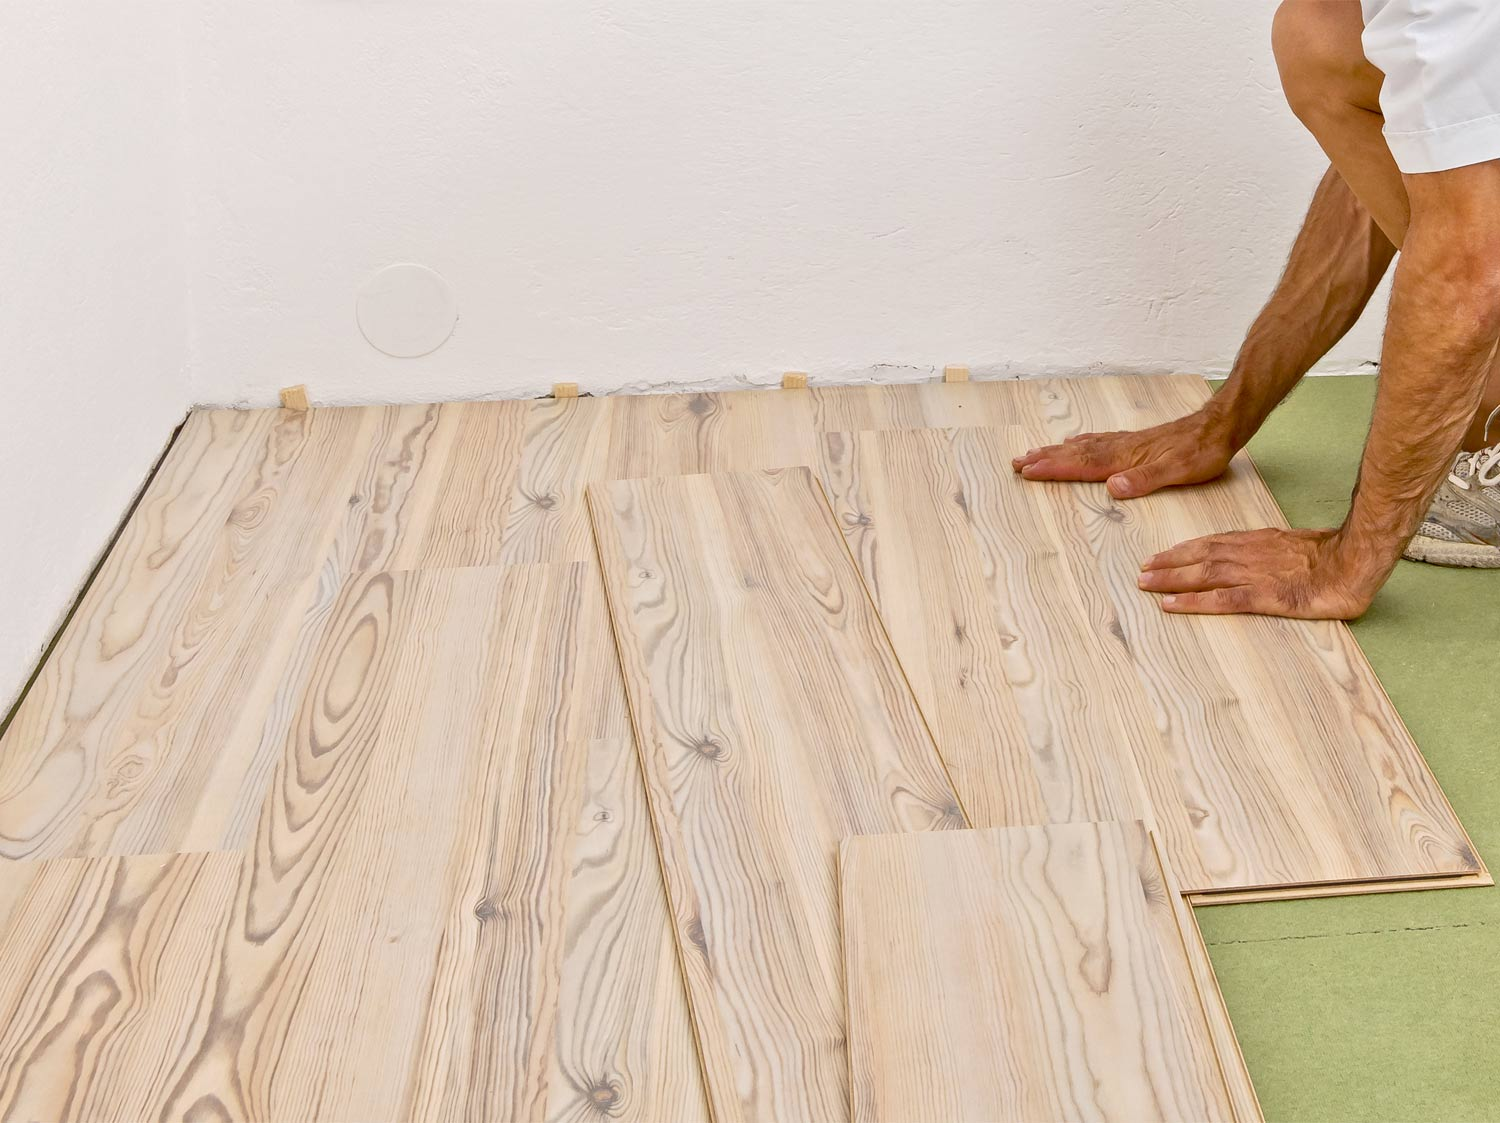 Comment isoler un plancher en surface ?